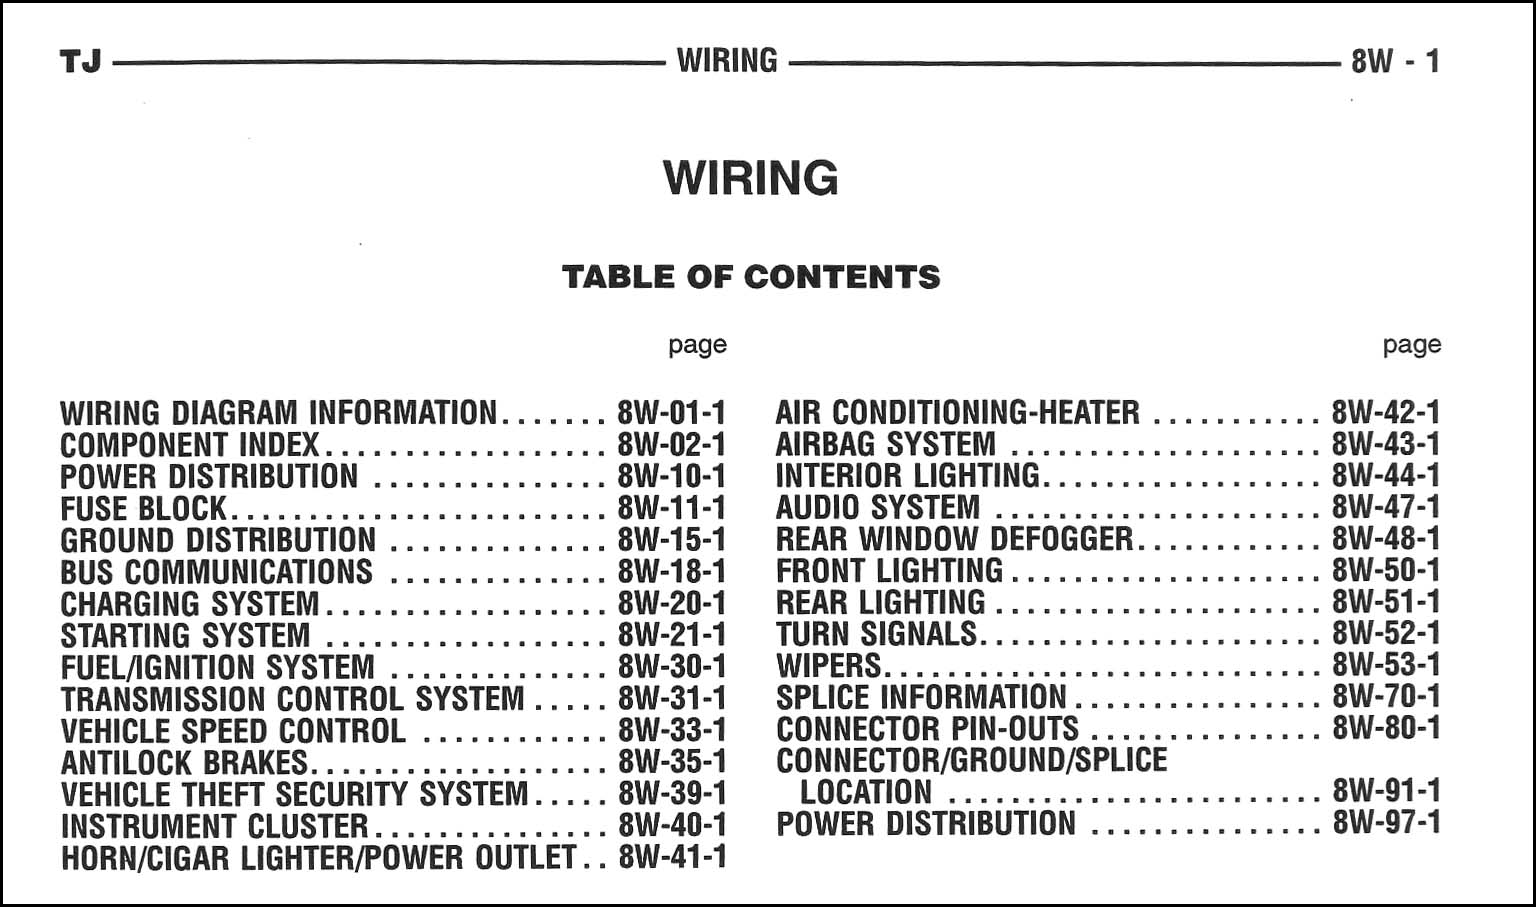 2005JeepWranglerOWD TOC 2005 jeep wrangler wiring diagram manual original jeep wrangler tj wiring diagram at gsmx.co